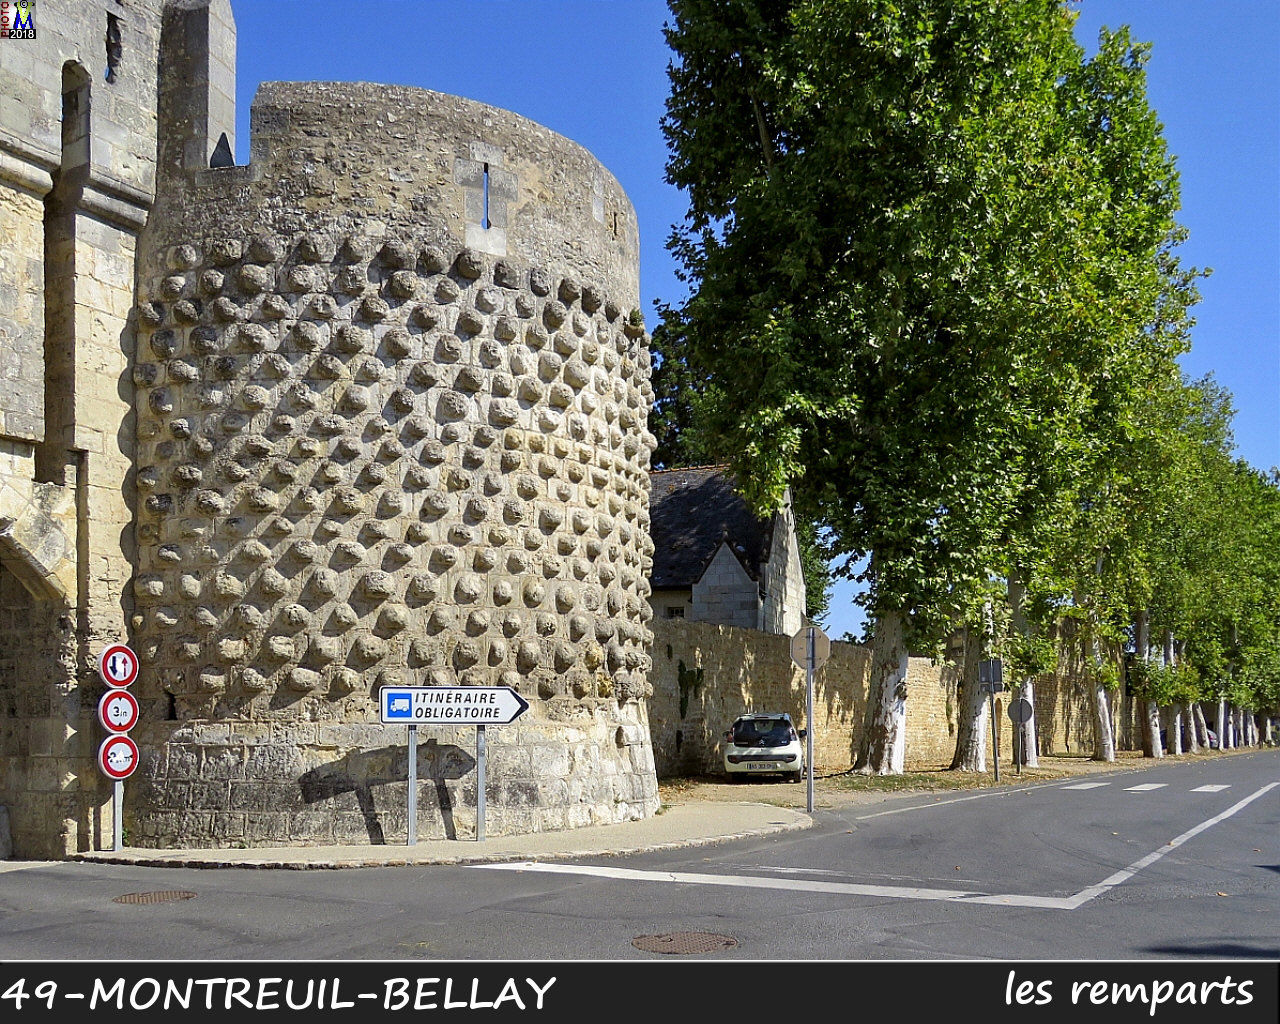 49MONTREUIL-BELLAY_remparts_1002.jpg